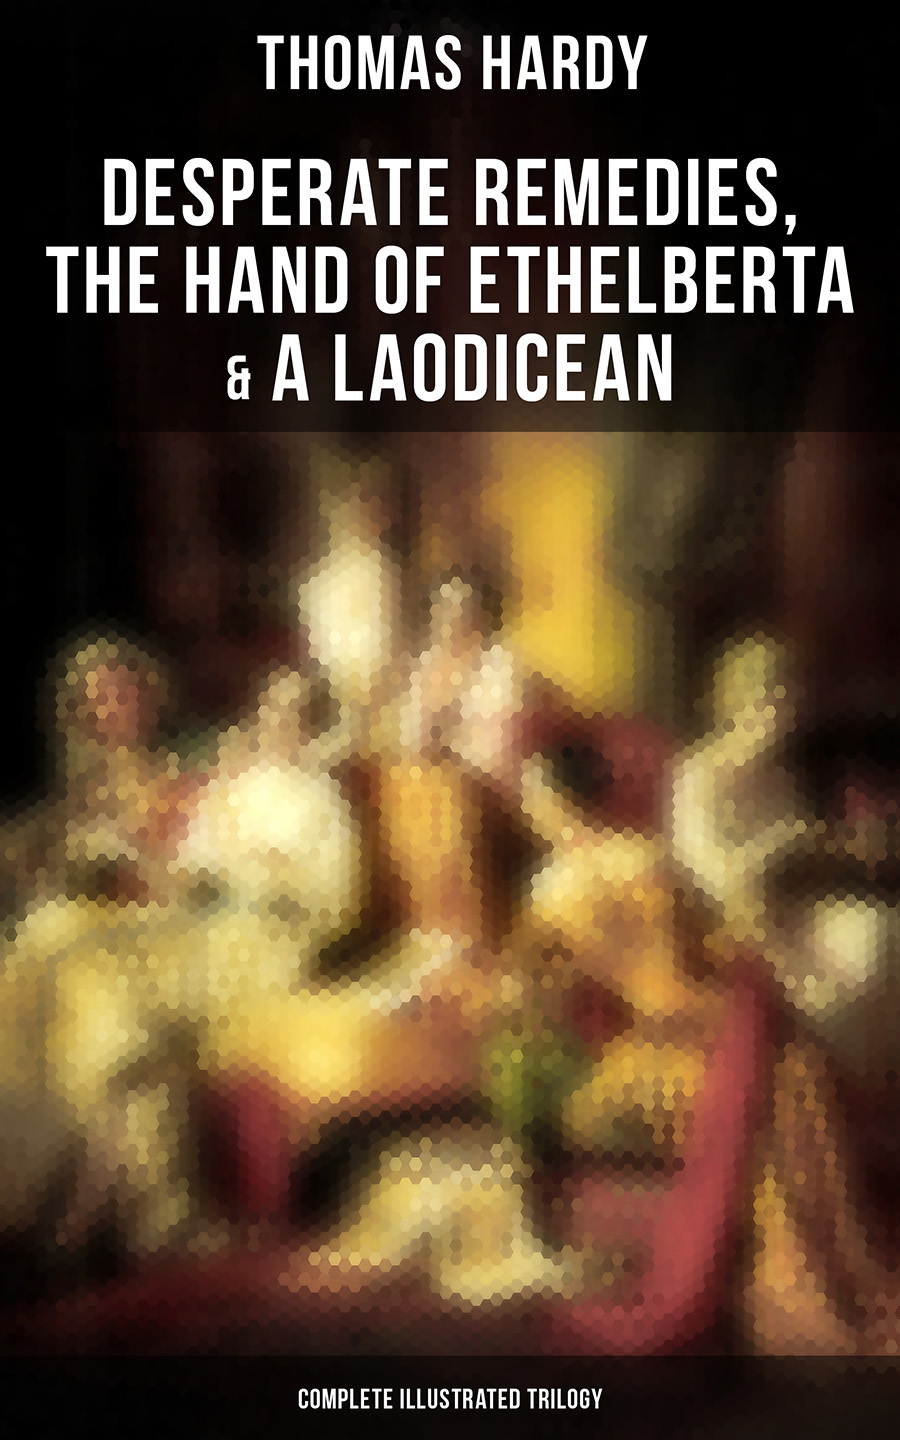 Томас Харди Desperate Remedies, The Hand of Ethelberta & A Laodicean: Complete Illustrated Trilogy berentes apple r logo – a complete illustrated handbook paper only